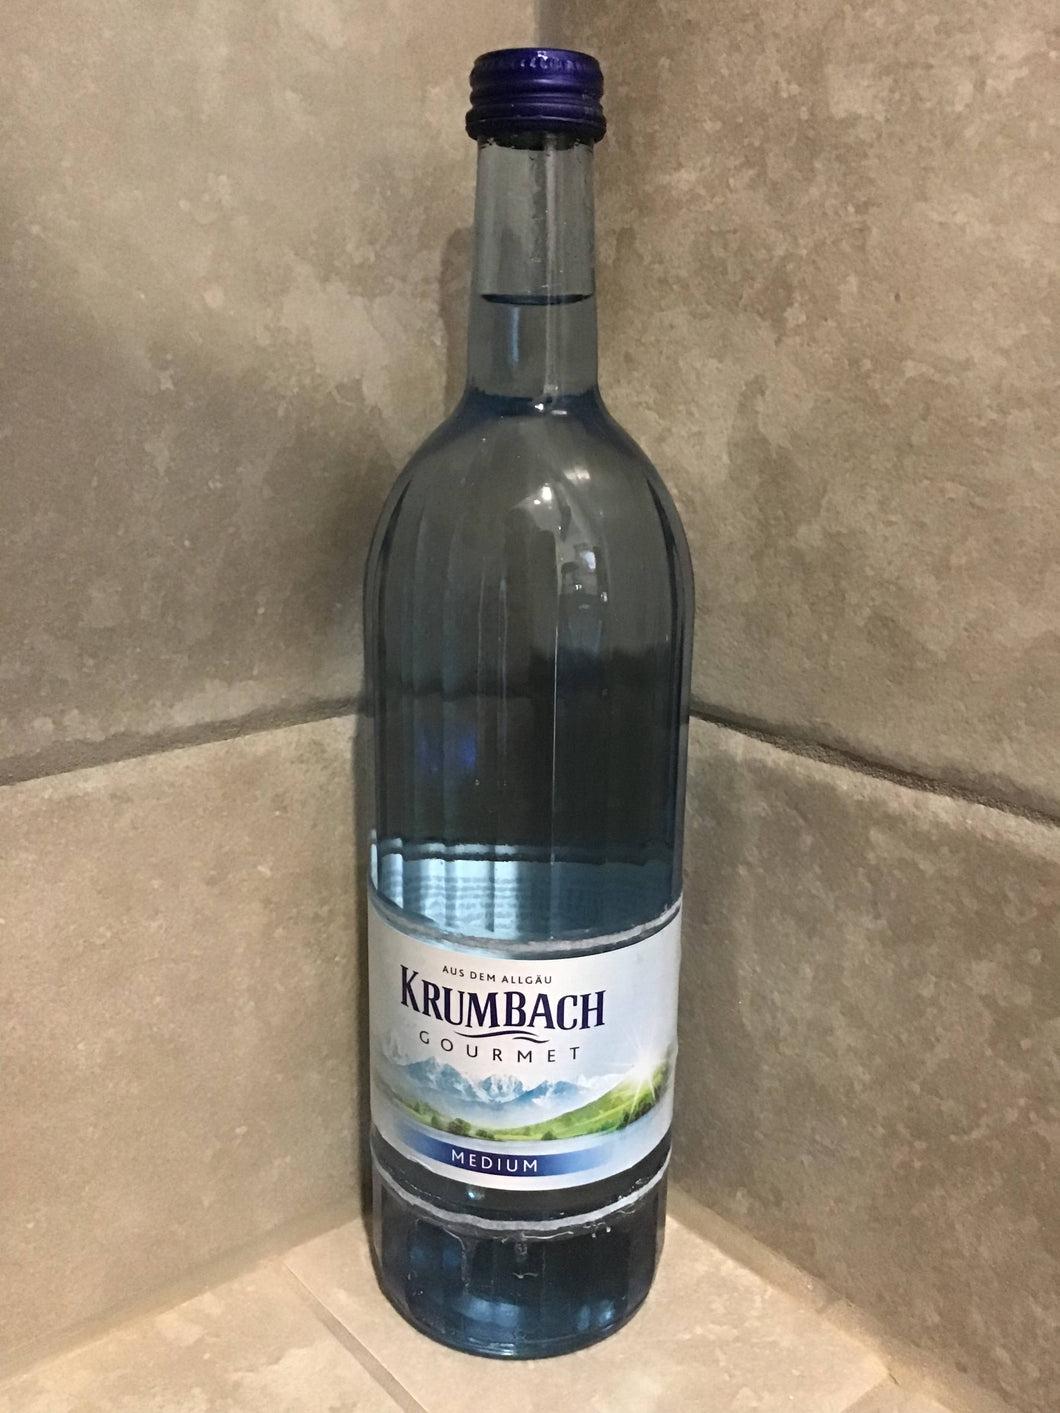 Krumbach gourmet medium